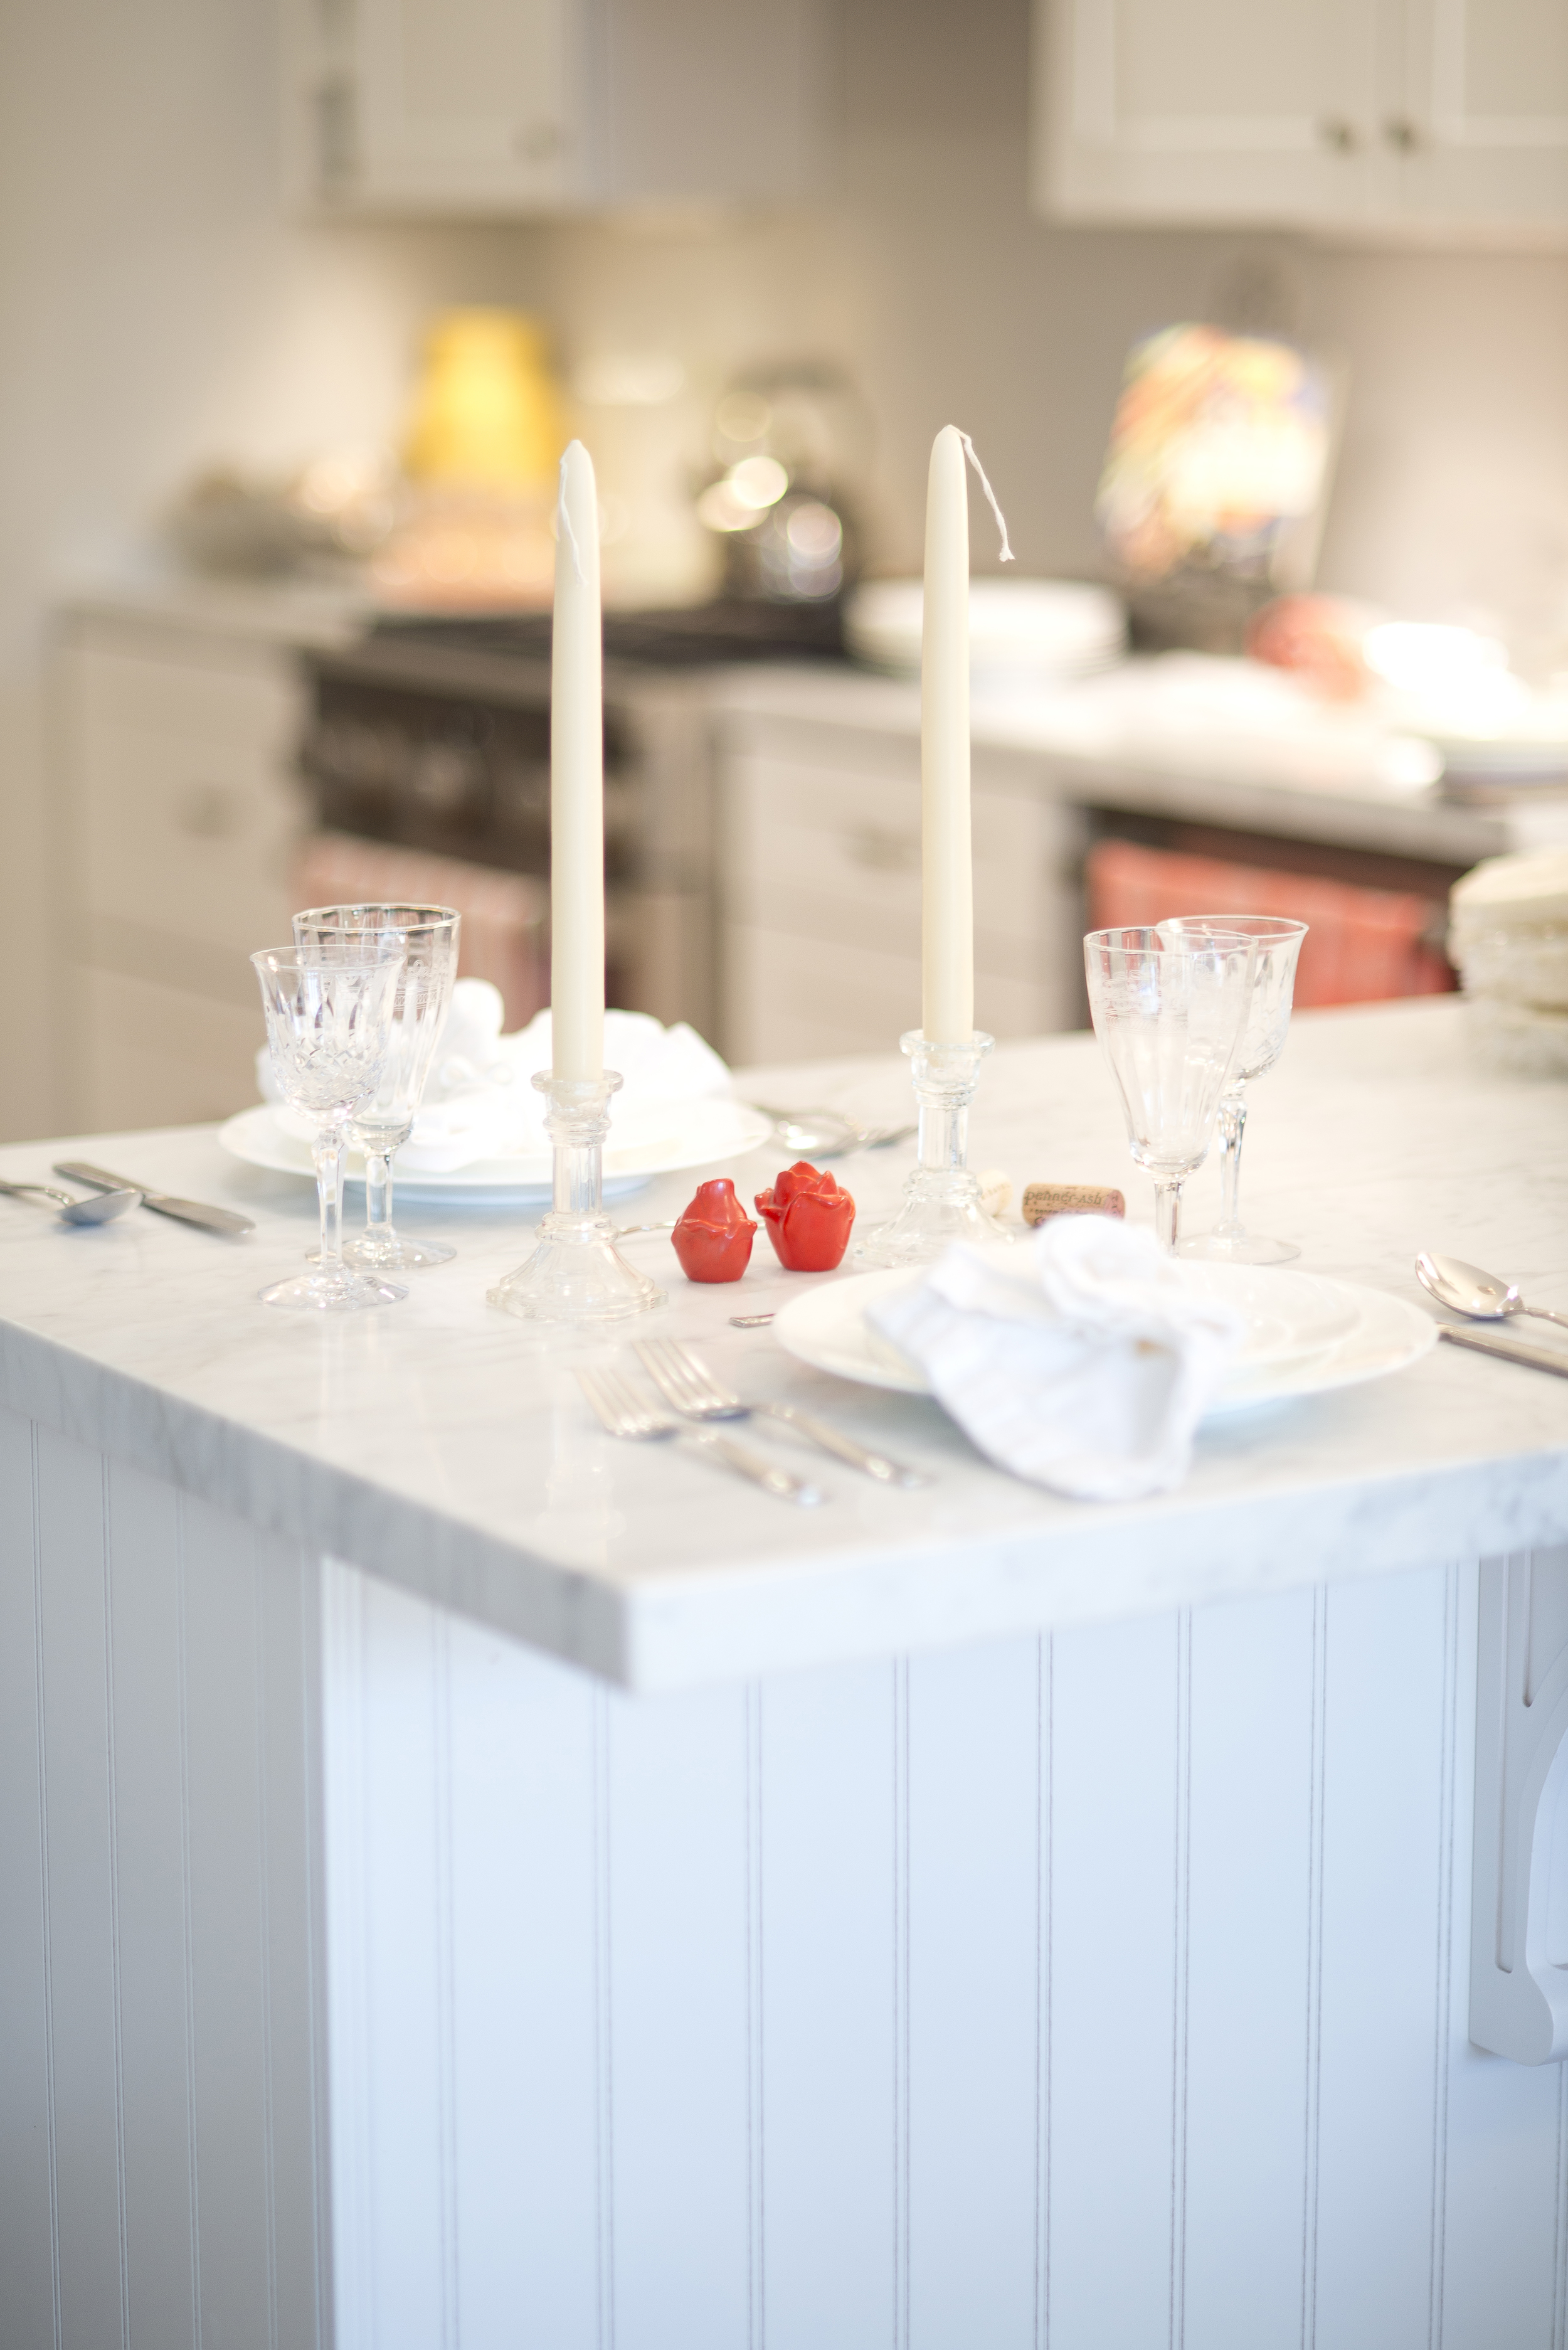 White dishes on white carrera marble countertops, we couldn't resist!